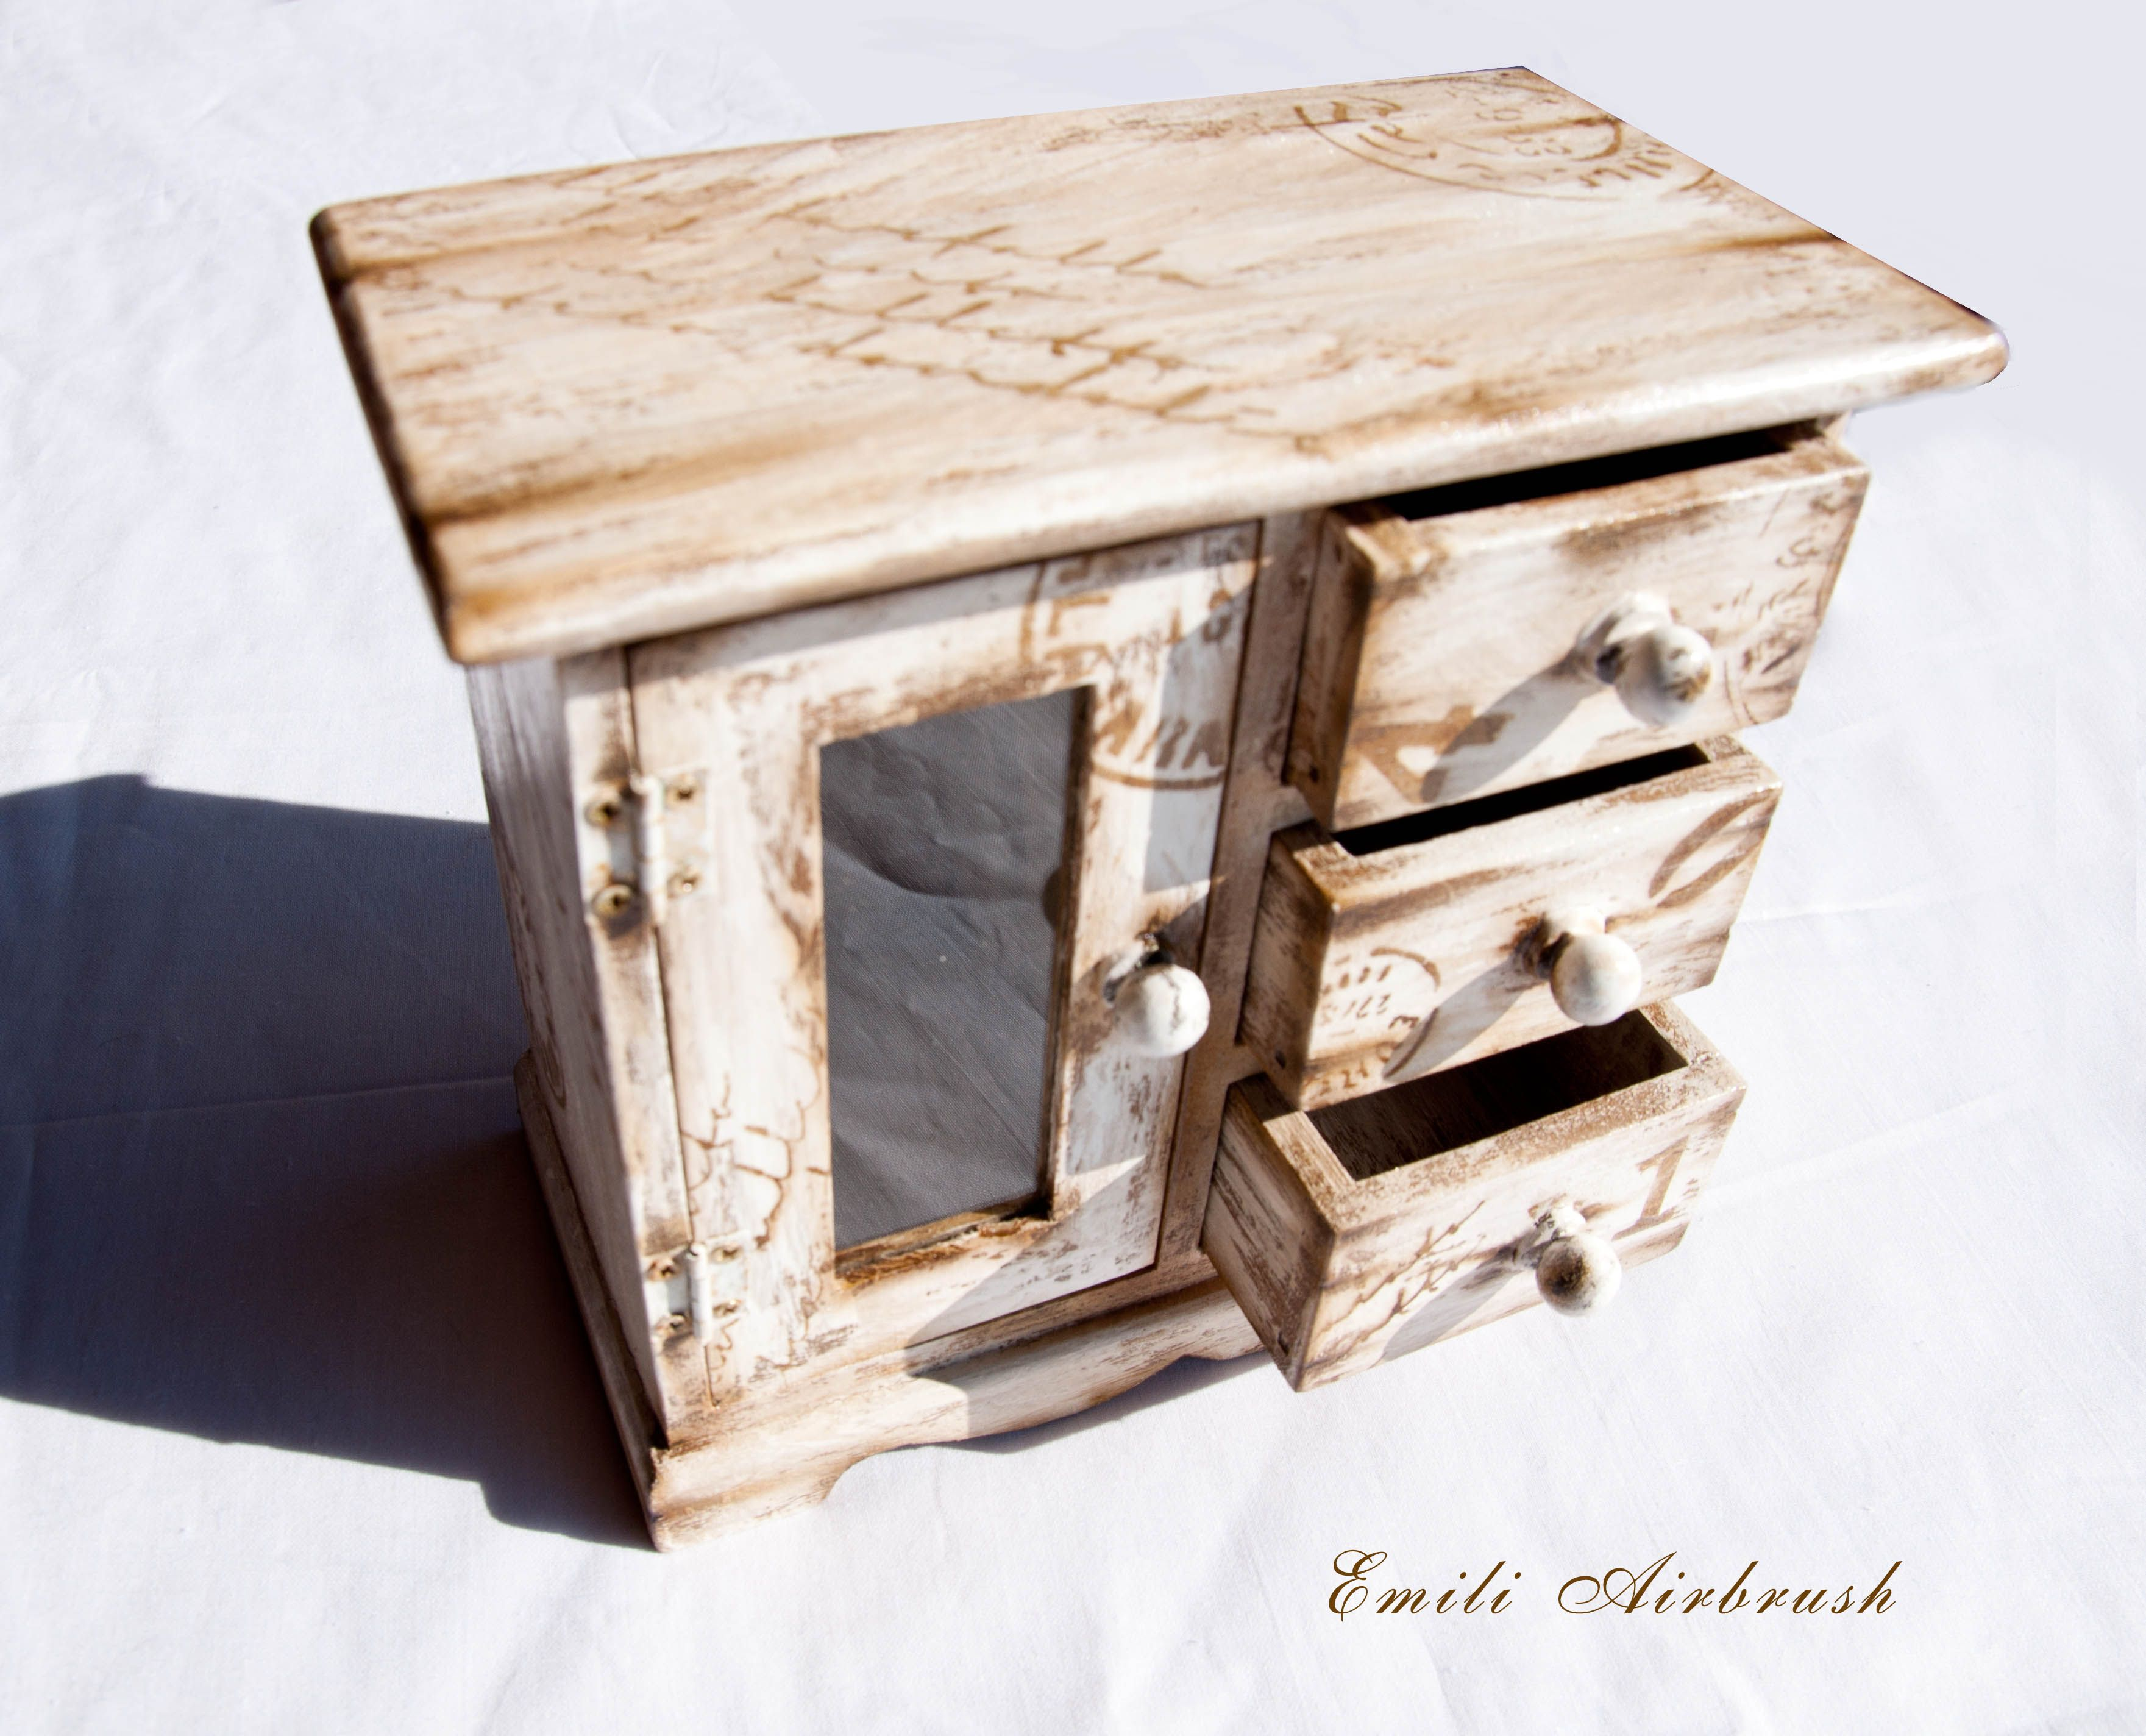 Shabby Look Jewelry Boxes Shabby Look Emili Design Handarbeit Unikat